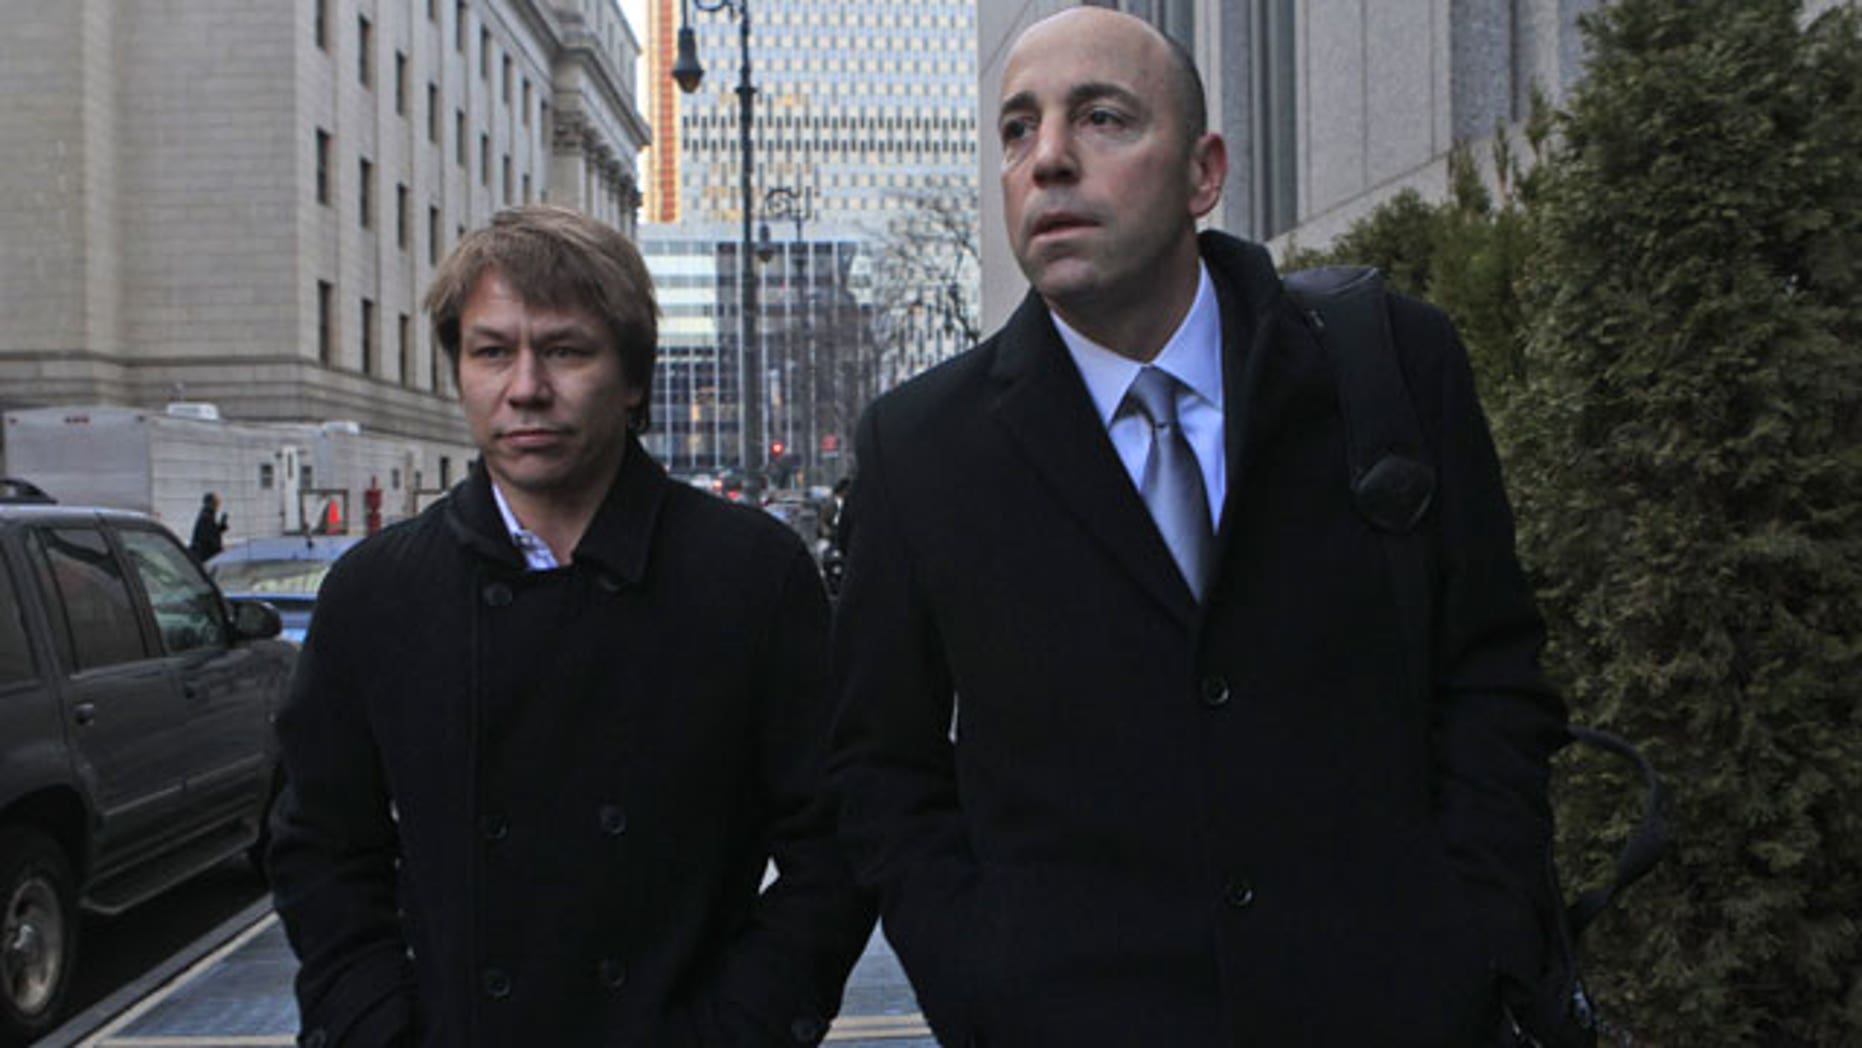 January, 18, 2012: Jon Horvath, left, an analyst at Sigma Capital Management leaves Manhattan Federal court in New York with his attorney. A hedge fund co-founder, four financial analysts and a Dell Inc. employee teamed up in a record-setting insider trading scheme that netted more than $61.8 million in illegal profits based on trades of a single stock, authorities said Wednesday.